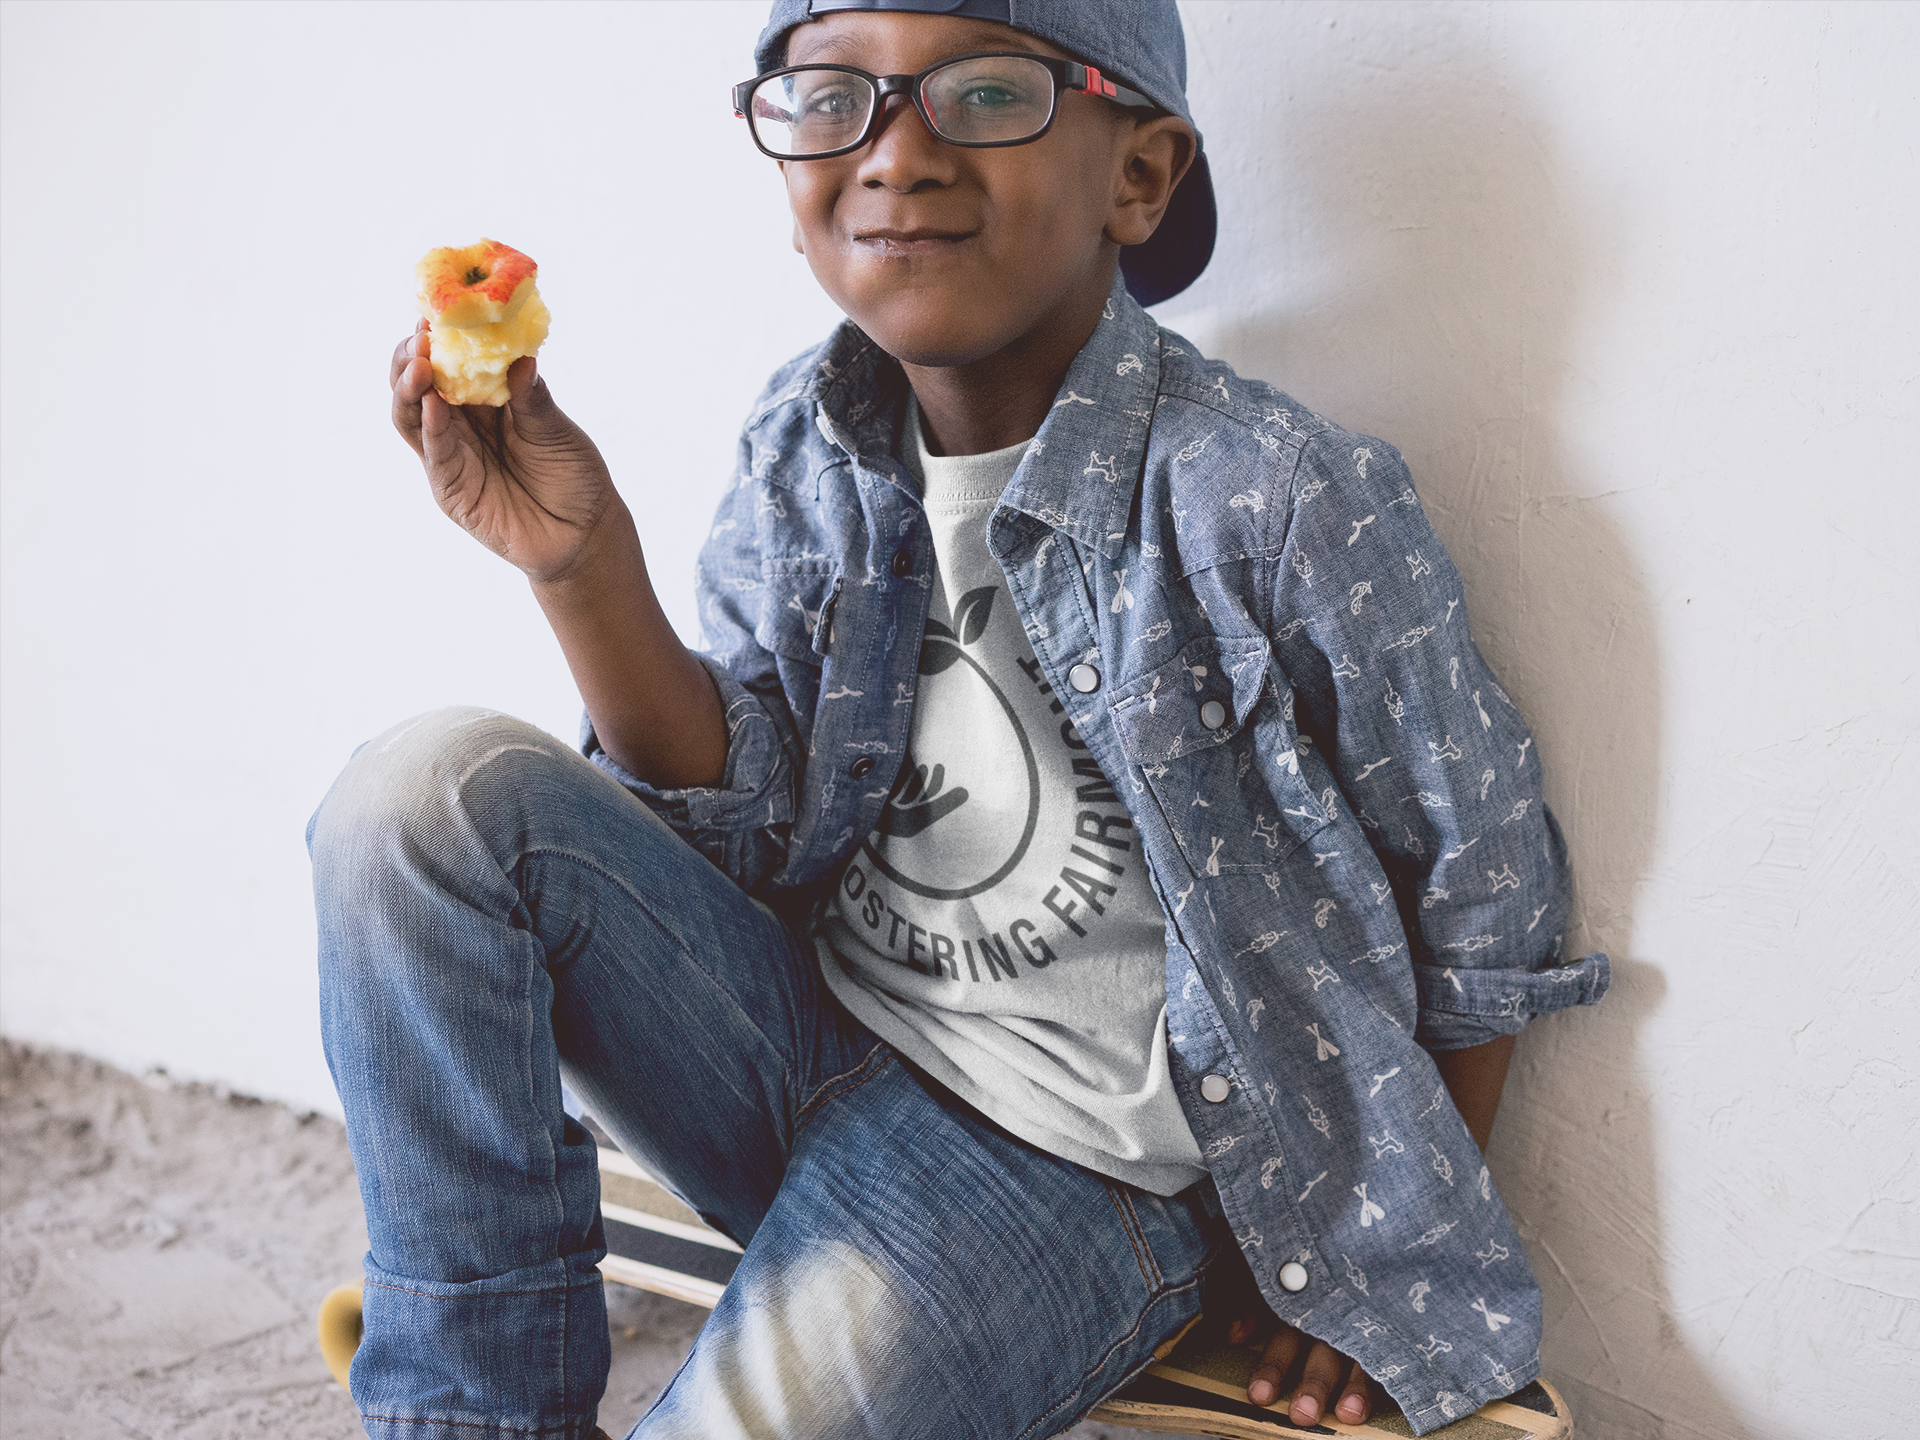 kid-s-t-shirt-mockup-of-a-young-boy-eating-an-apple-a12075.png